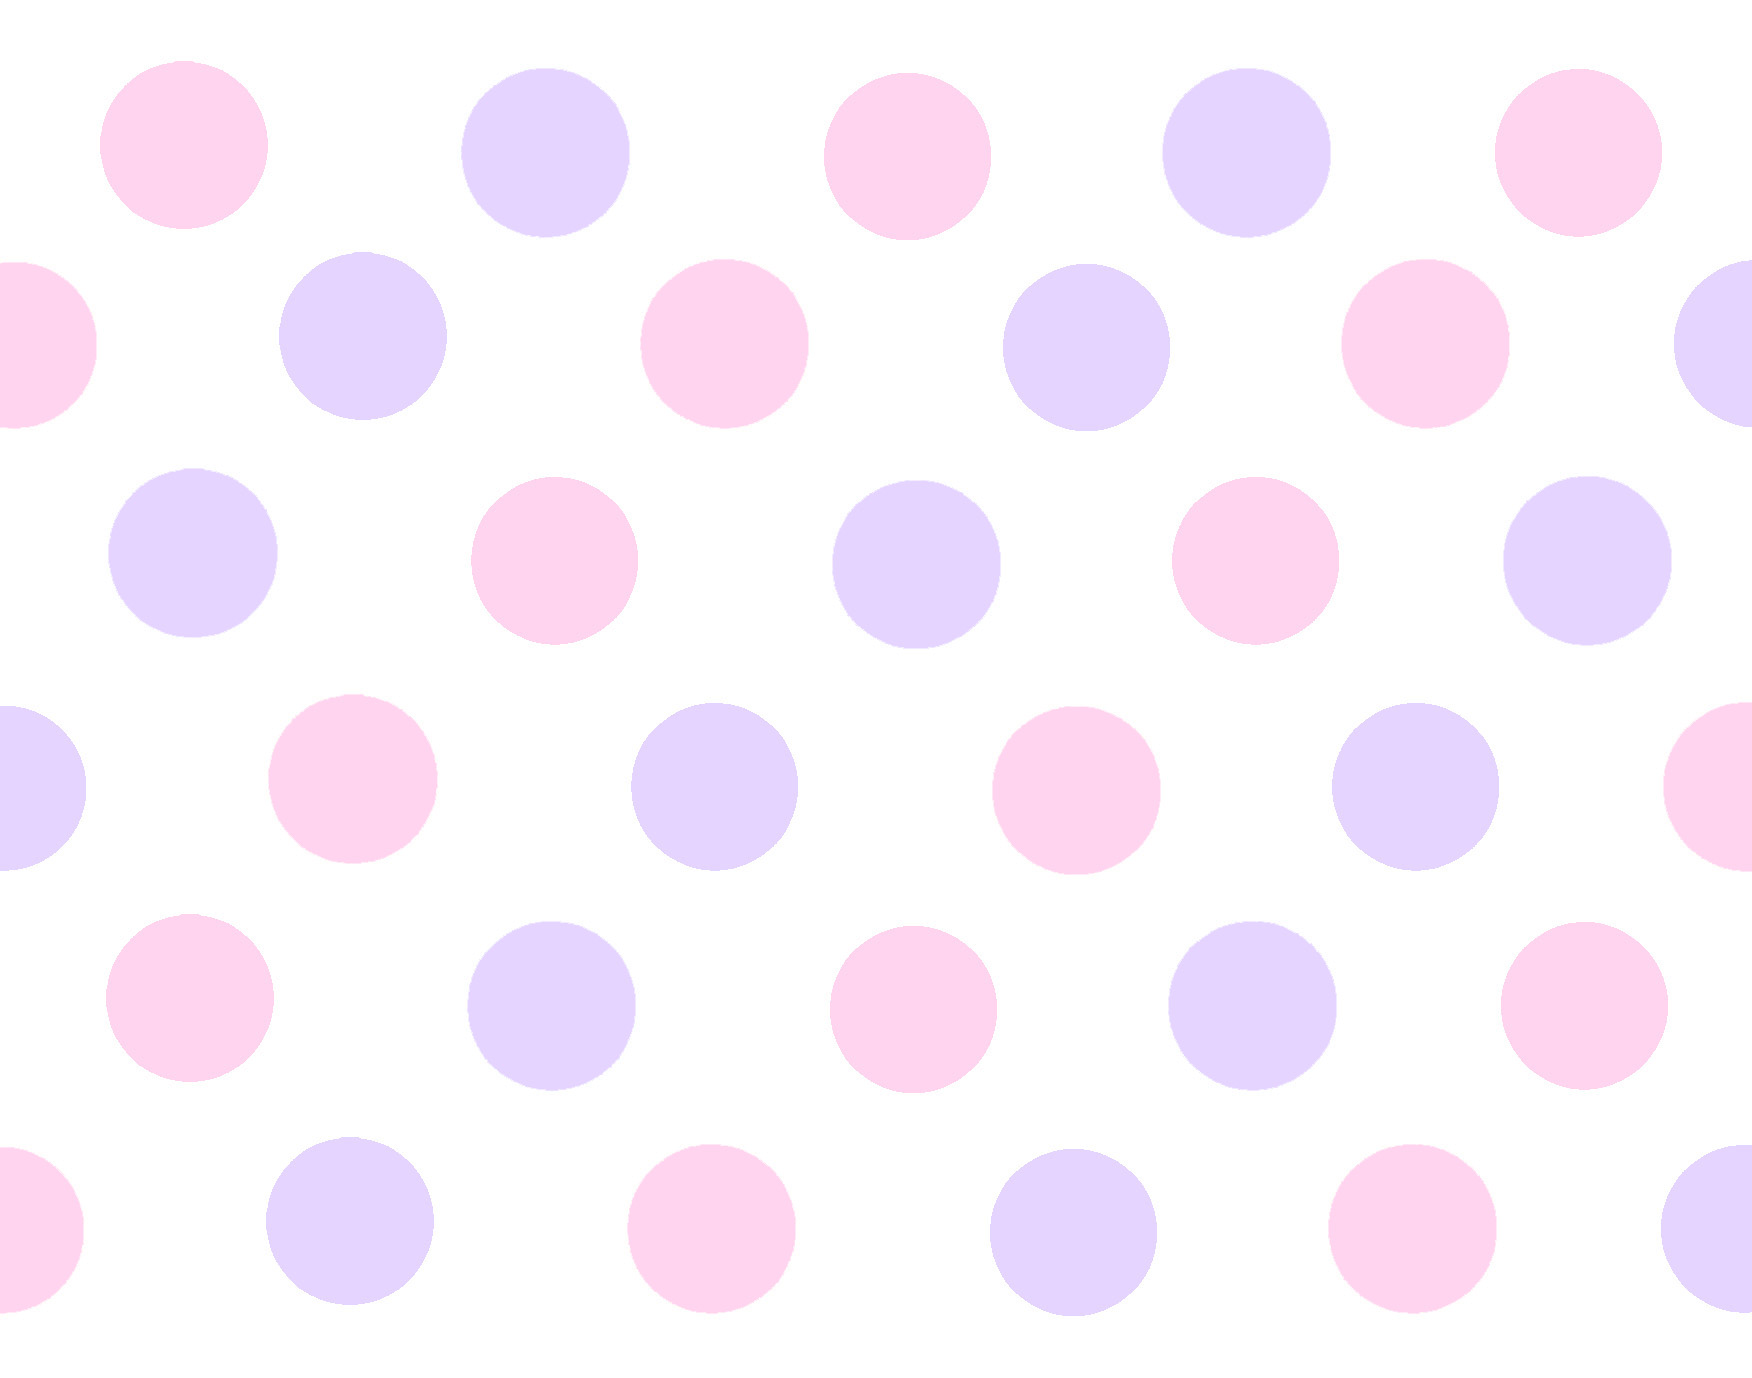 polka dot background related keywords suggestions pink polka dot